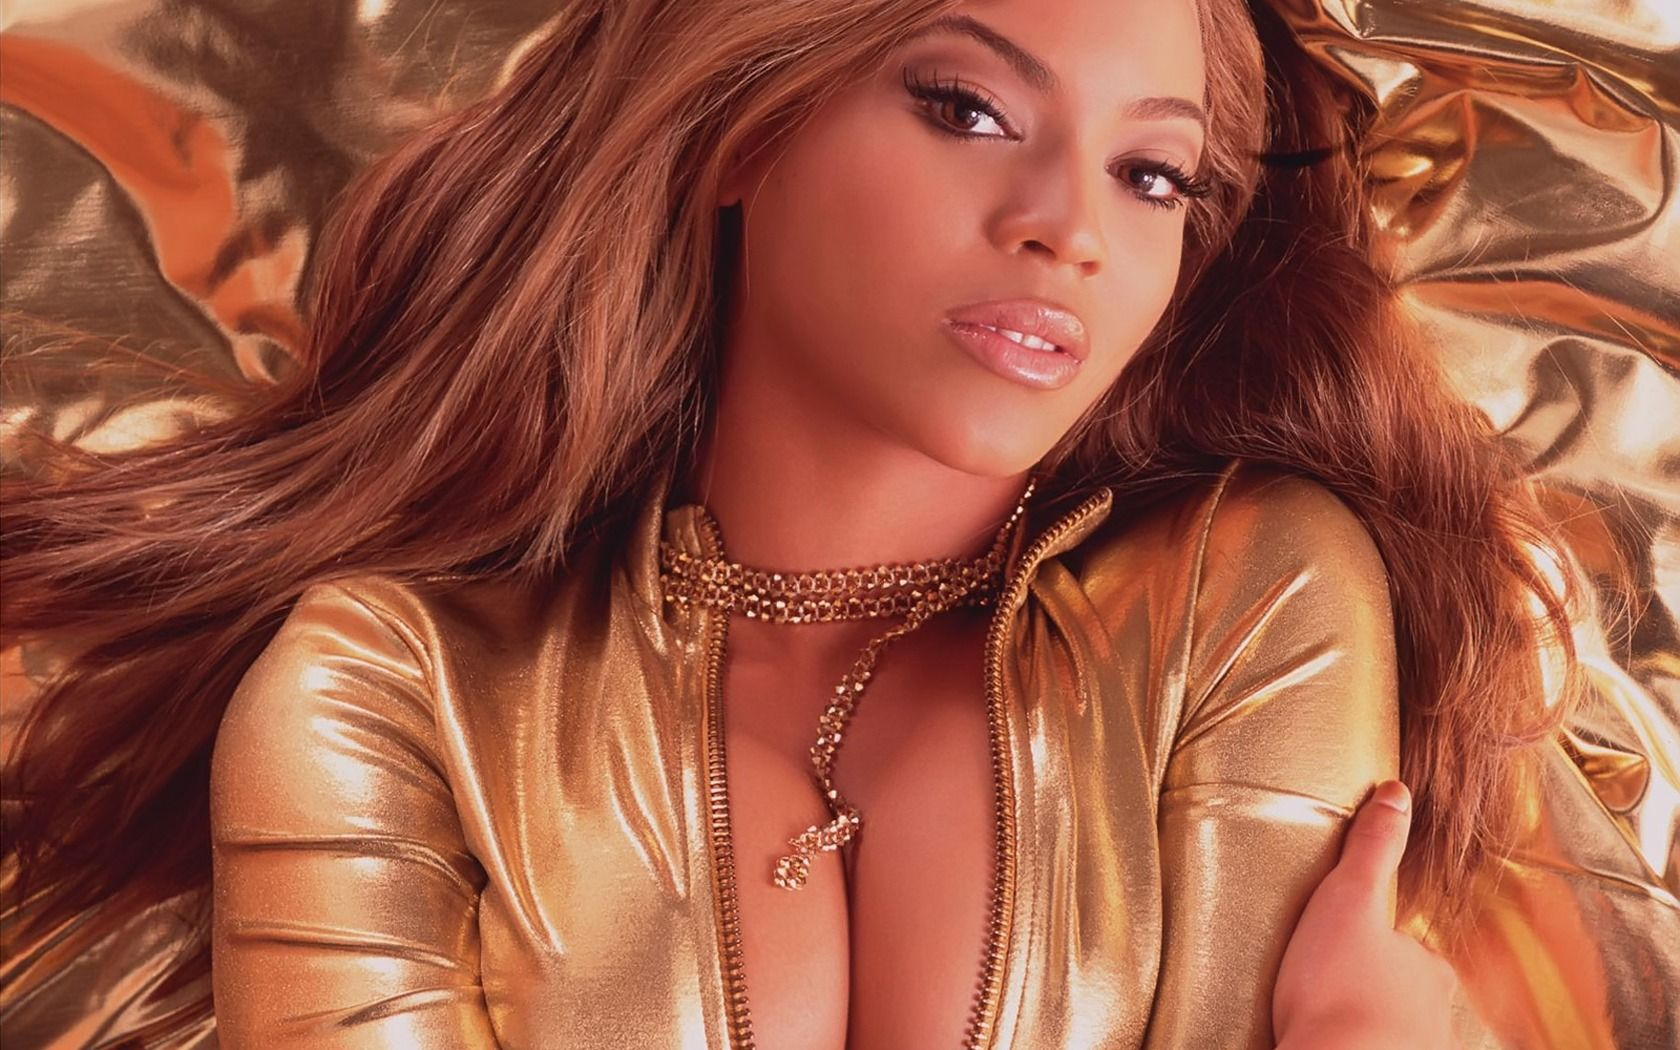 Beyonce Nude Pussy Top sexphoto download. cumshot. #sexy #sex #naked #nude #hot #girls